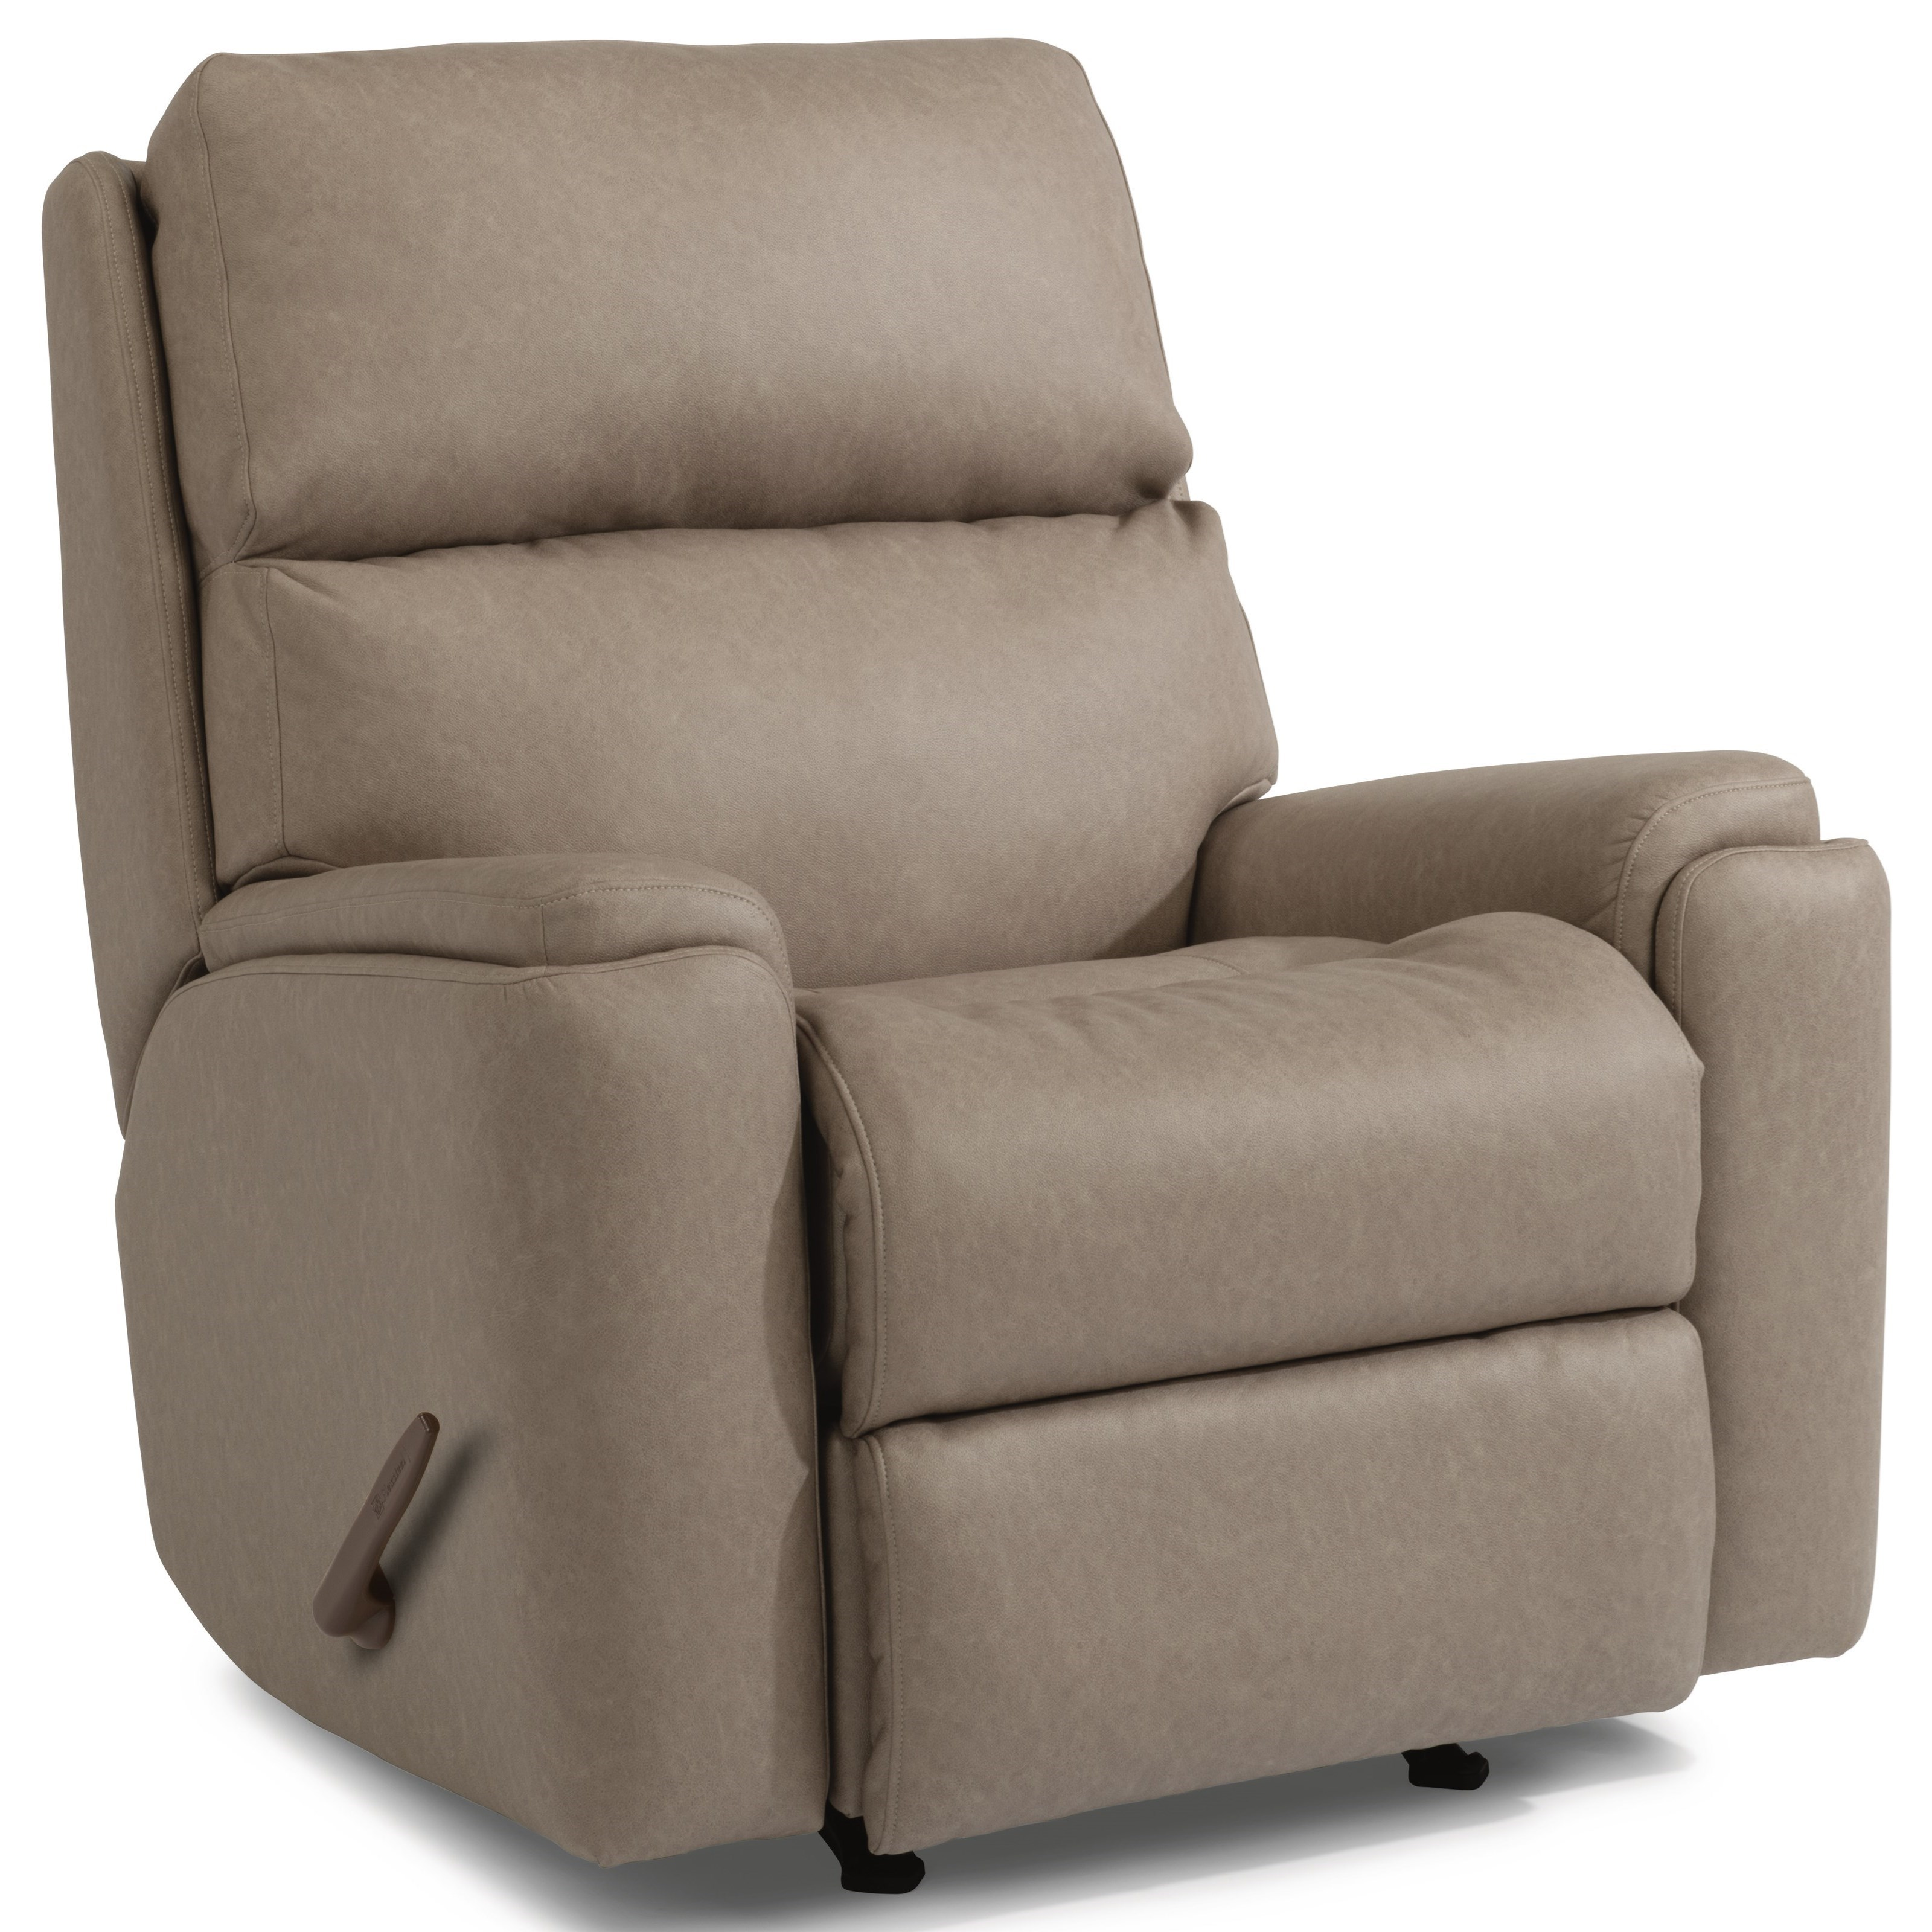 Recliner Pillow Flexsteel Rio Casual Rocking Recliner With Pillow Arms Goffena